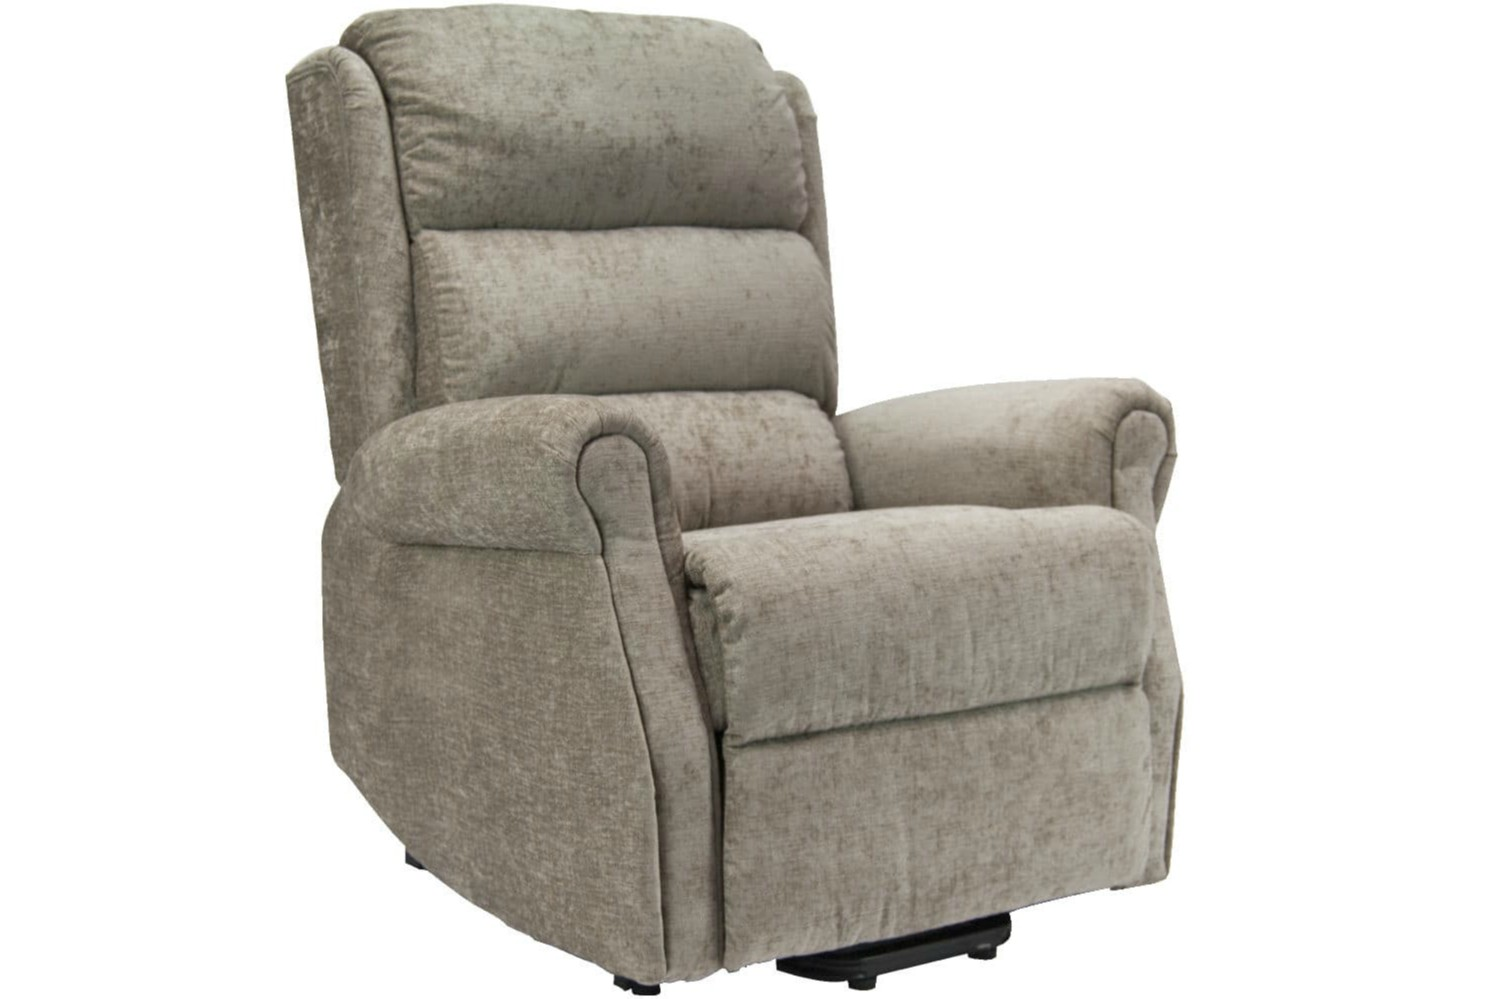 Double Wide Recliner Chair Hudson Recliner Chair Electric Mink